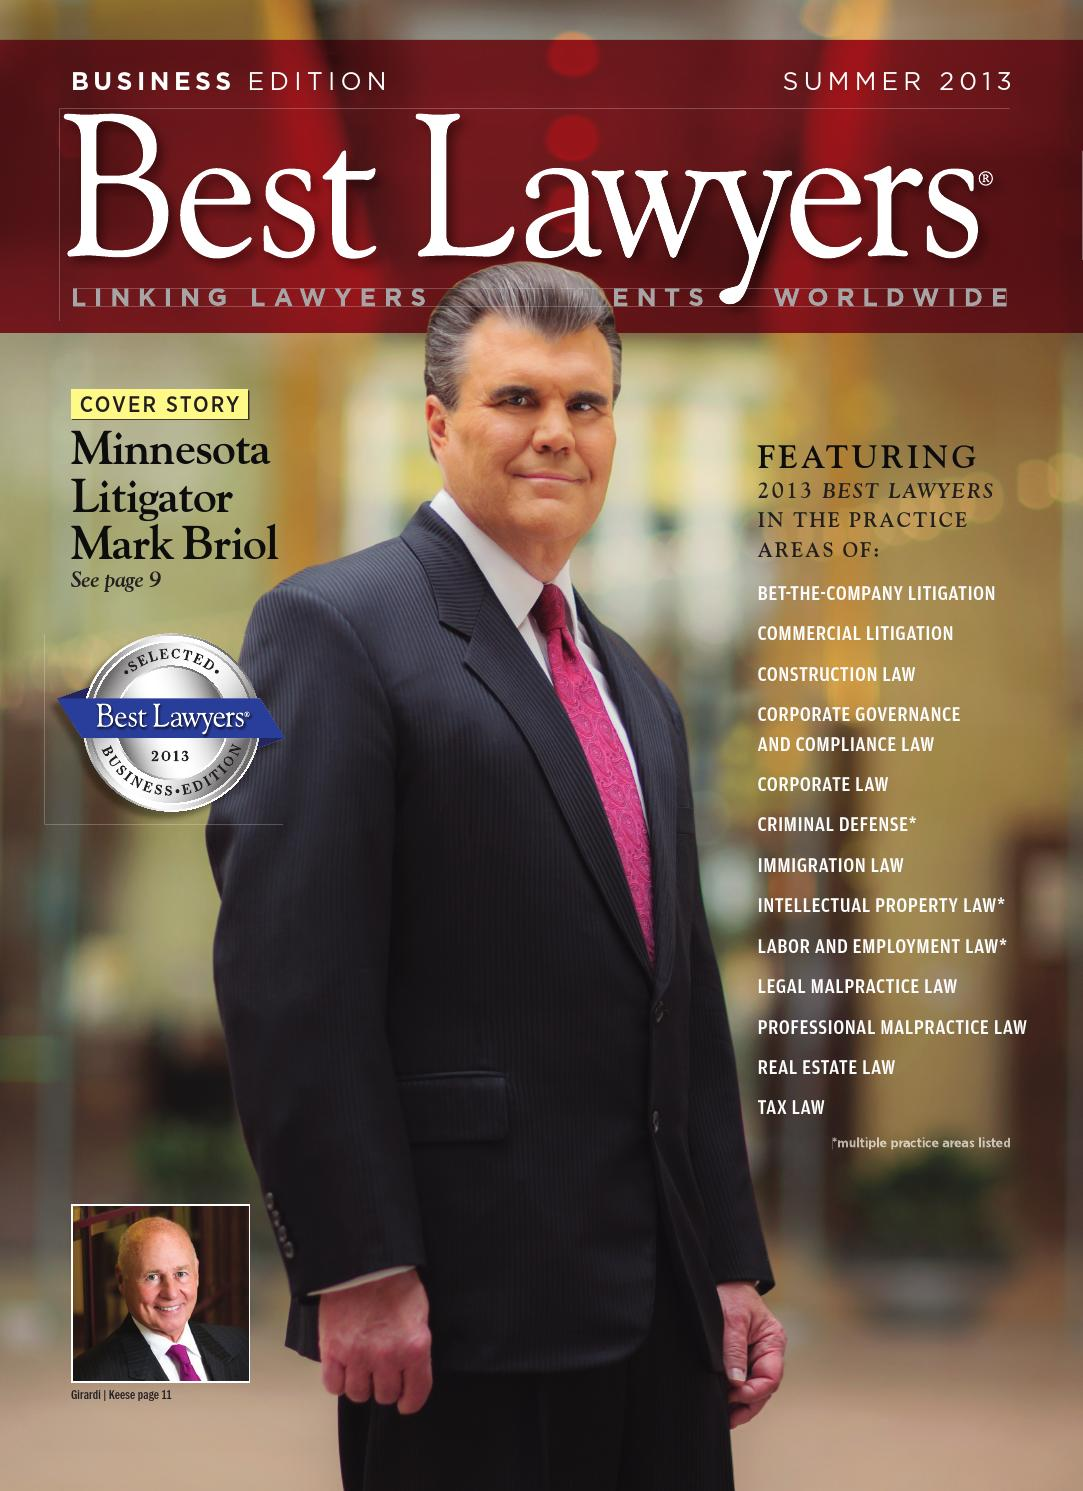 Best Lawyers Summer Business Edition 2013 By Best Lawyers